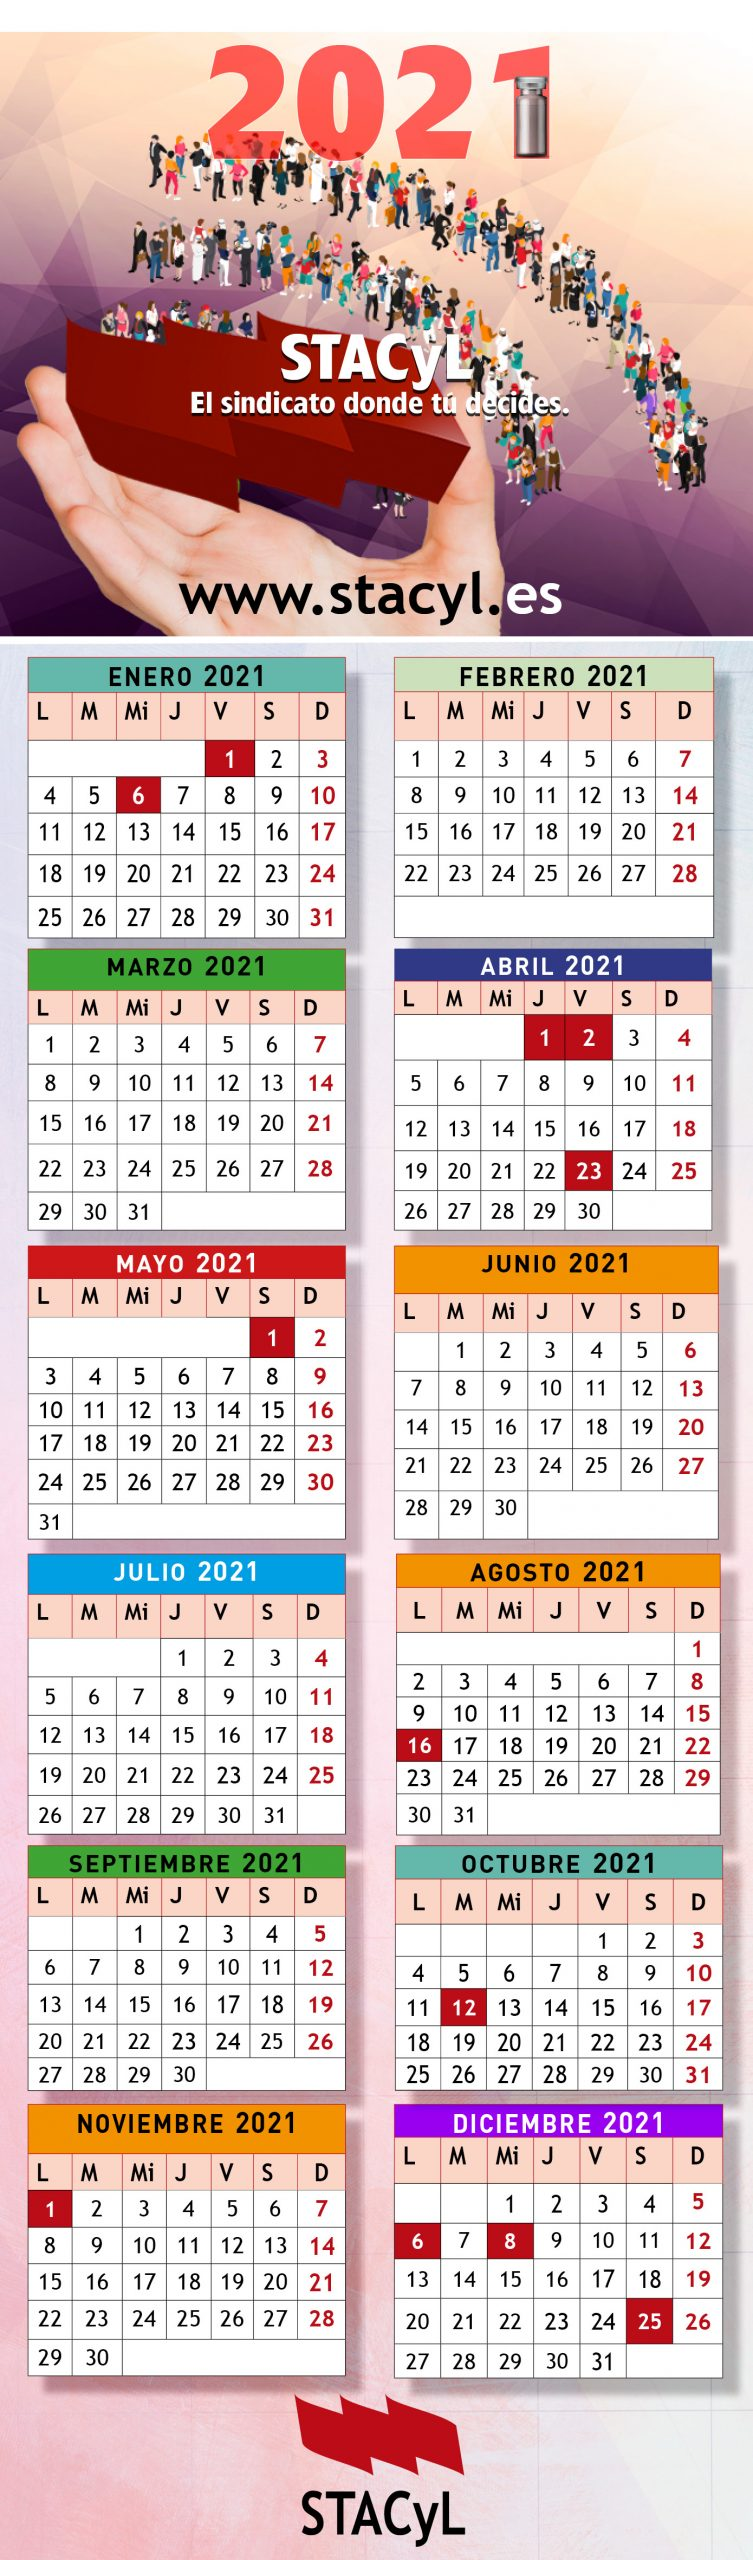 STACYL CALENDARIO WEB 2021